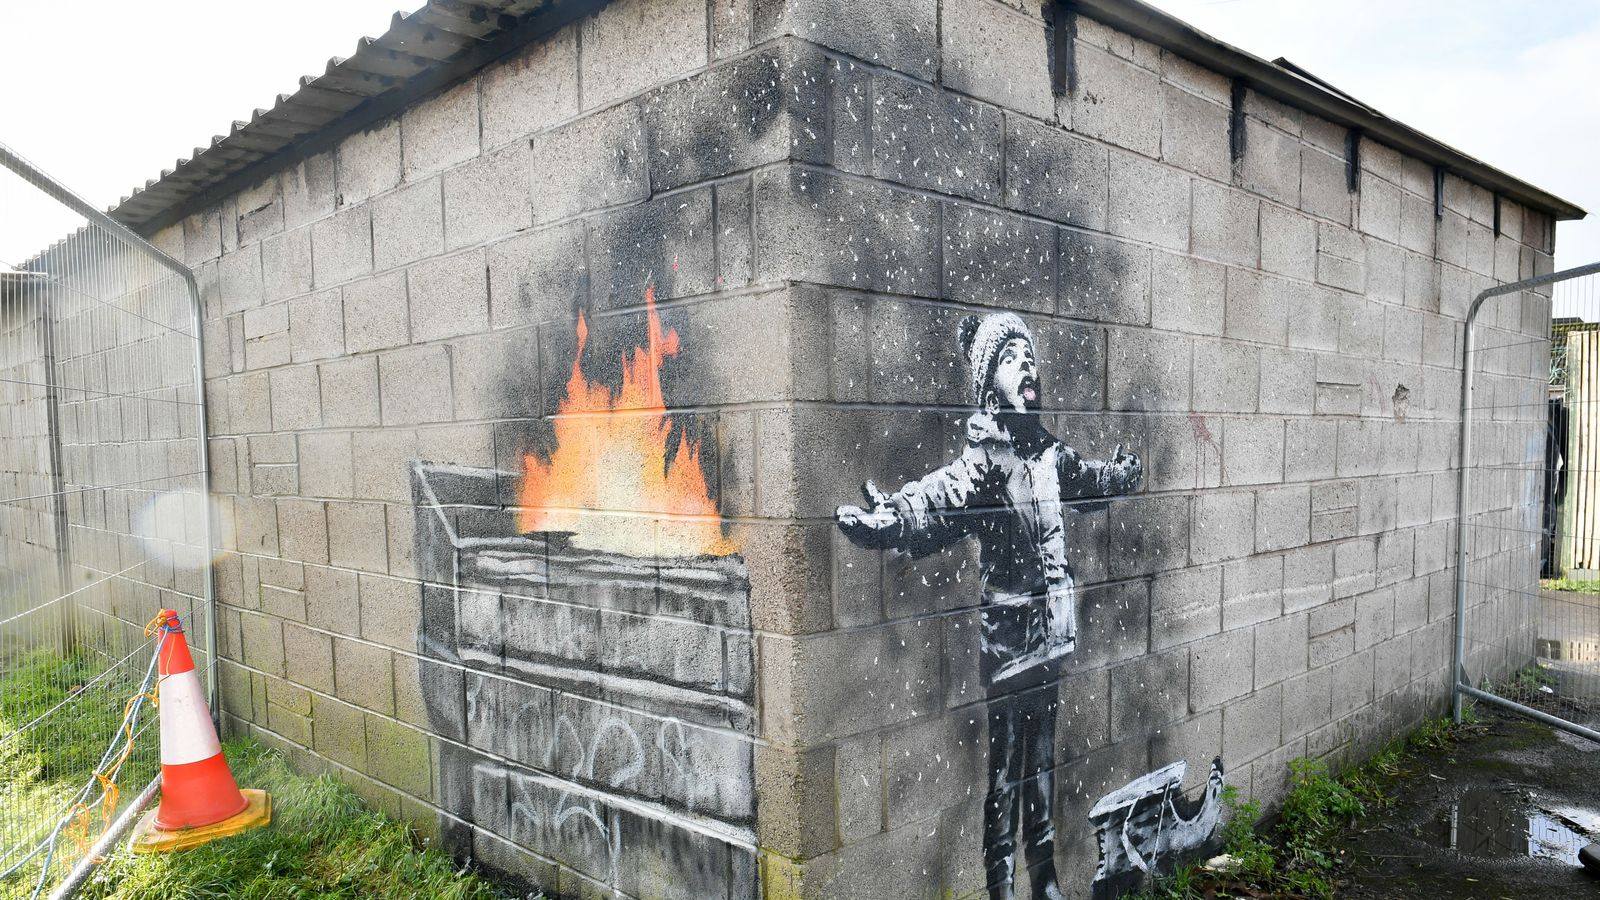 Banksy: Work starts to relocate Port Talbot street art from garage to  museum | Ents & Arts News | Sky News